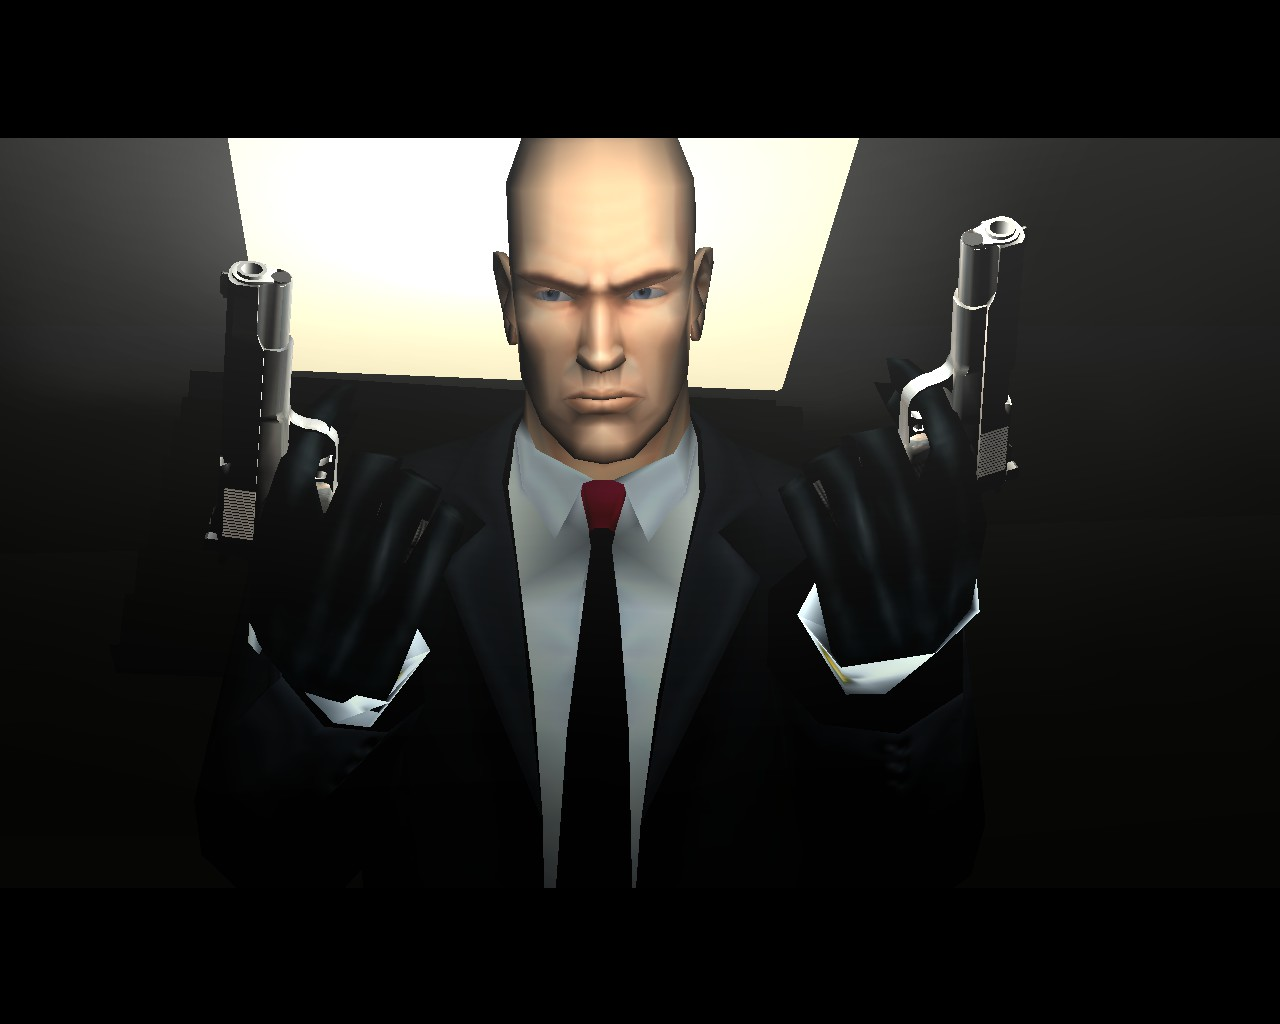 Hitman 2 Silent Assassin Please Insert Cd